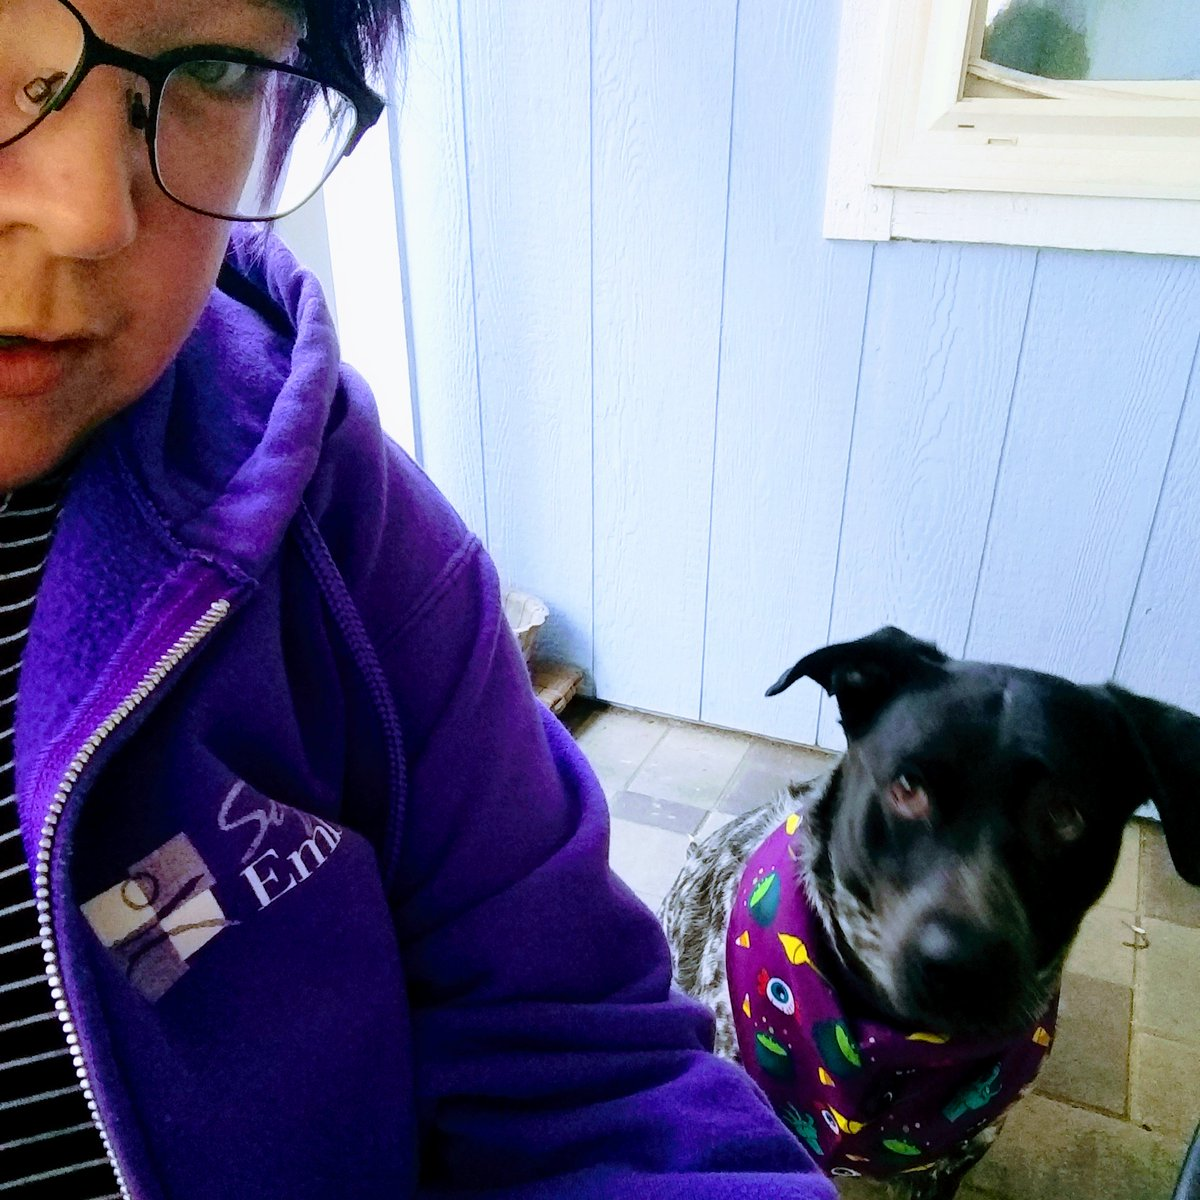 Today I'm wearing my purple  @SafeEmbrace sweatshirt and Charlotte's sporting purple too!  #PurpleThursday for #DomesticViolenceAwarenessMonth  #LoveShouldBeSweet #TellSomeone #ISpeakUp https://t.co/ytTsmCS9nI